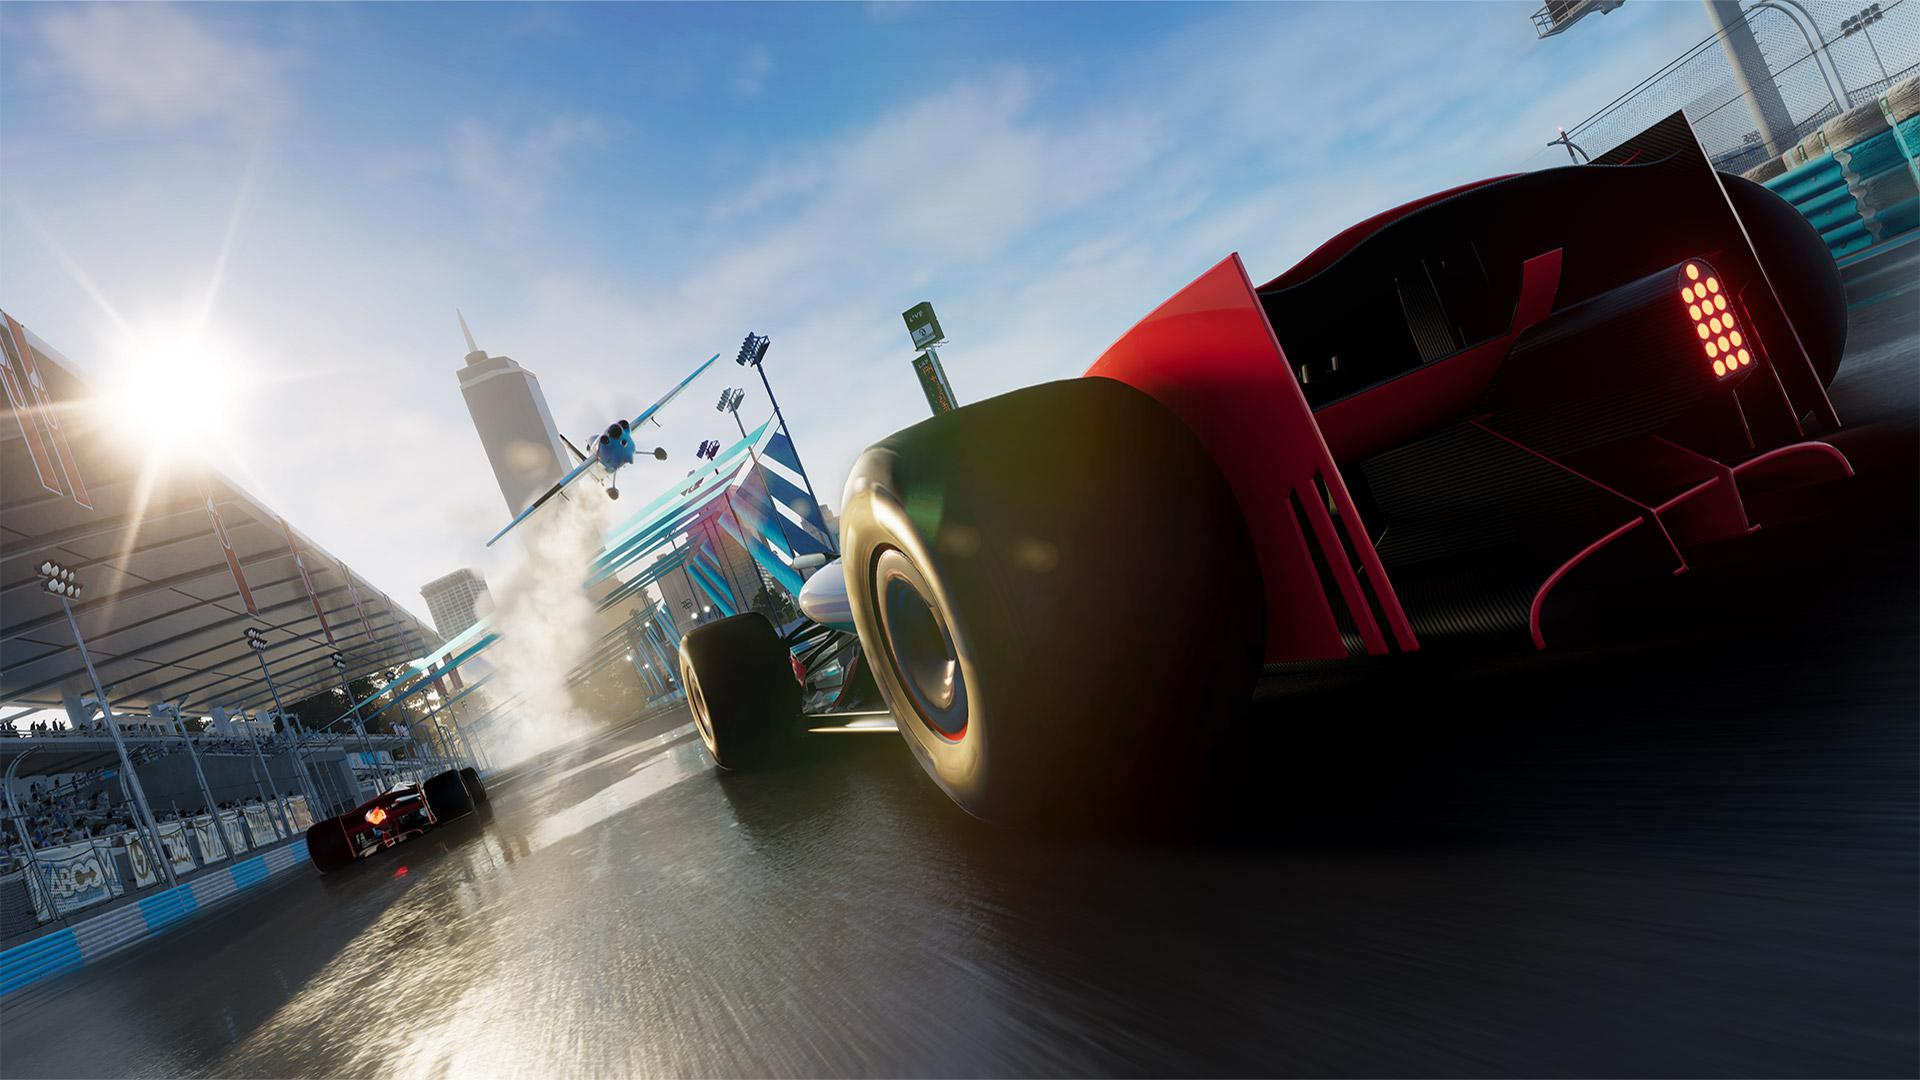 The Crew 2 isn't out until next year but is already shaping up to be a must buy